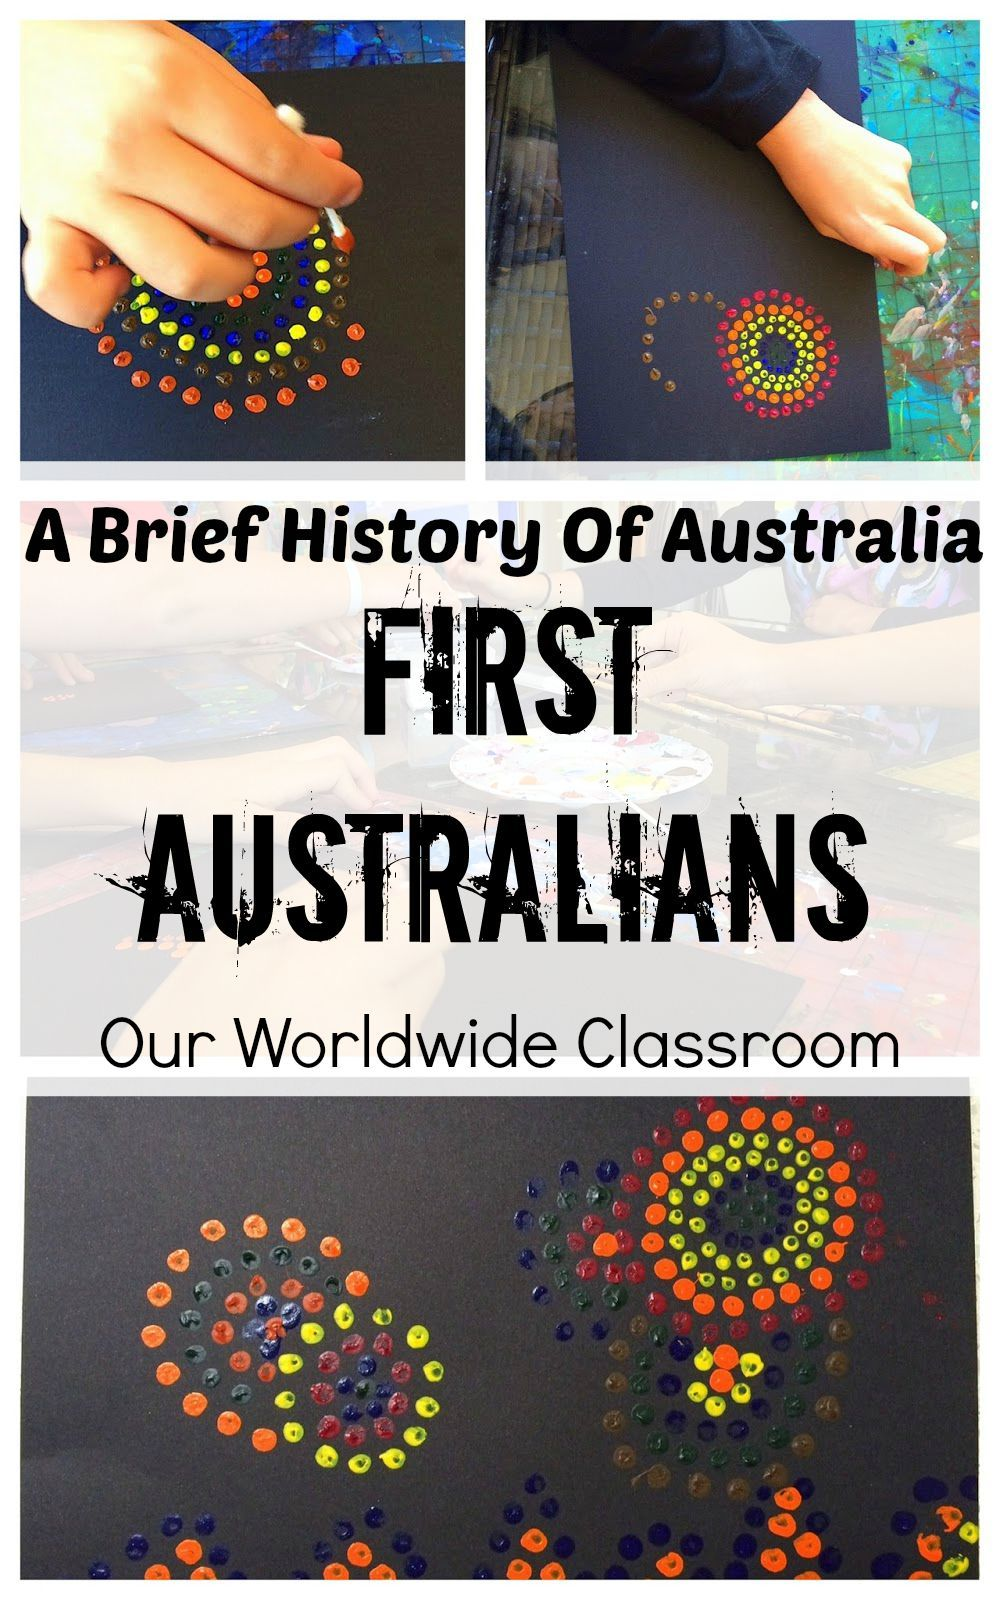 Our Worldwide Classroom: The First Australians - A Brief History Of Australia